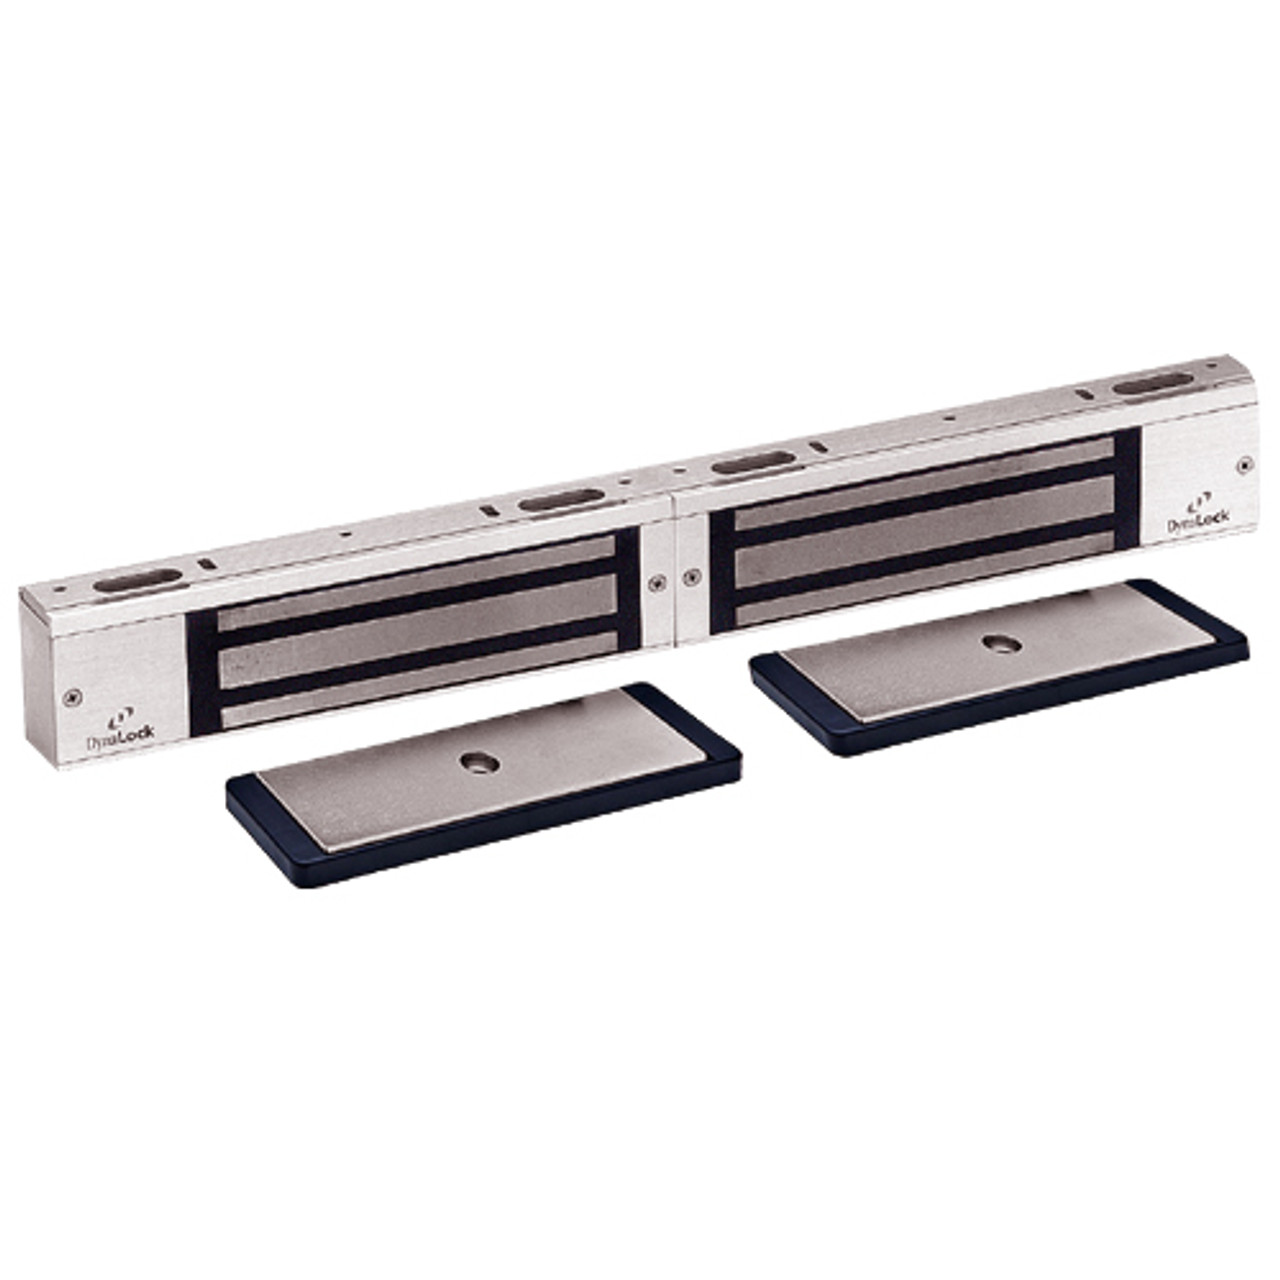 3002-US28-DSM2 DynaLock 3000 Series 1500 LBs Double Electromagnetic Lock for Outswing Door with DSM in Satin Aluminum